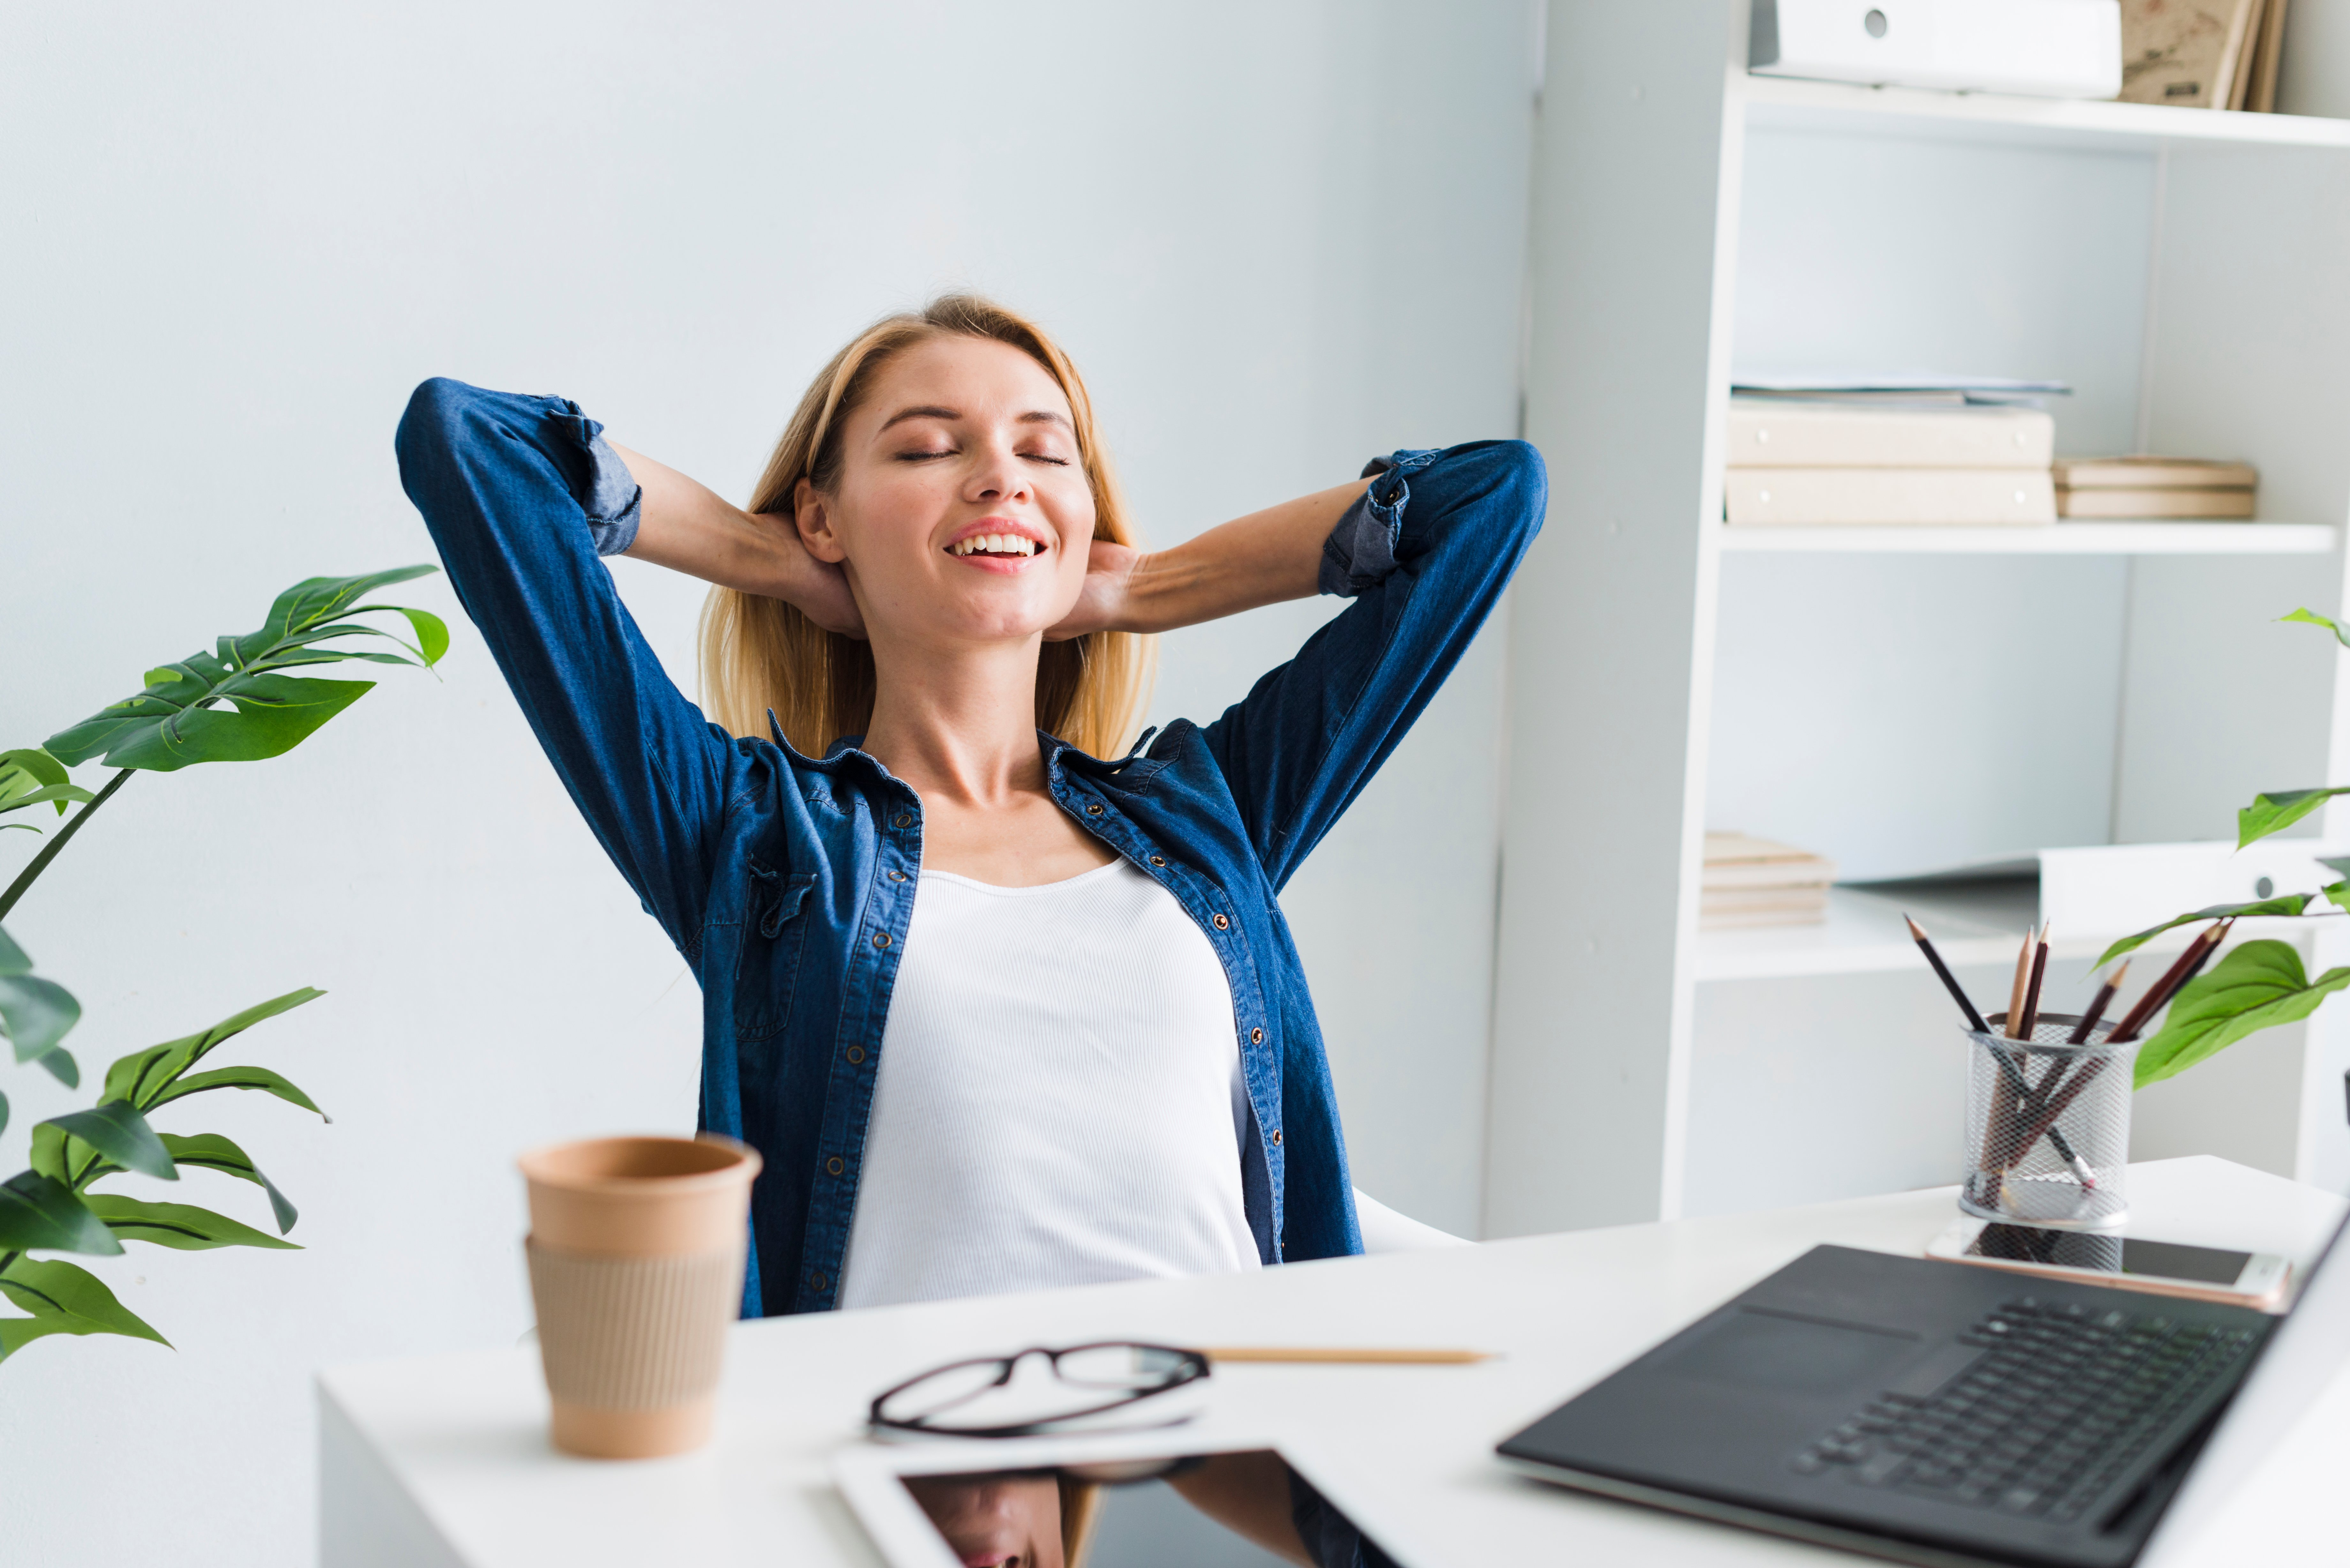 Staying mentally safe when working remotely